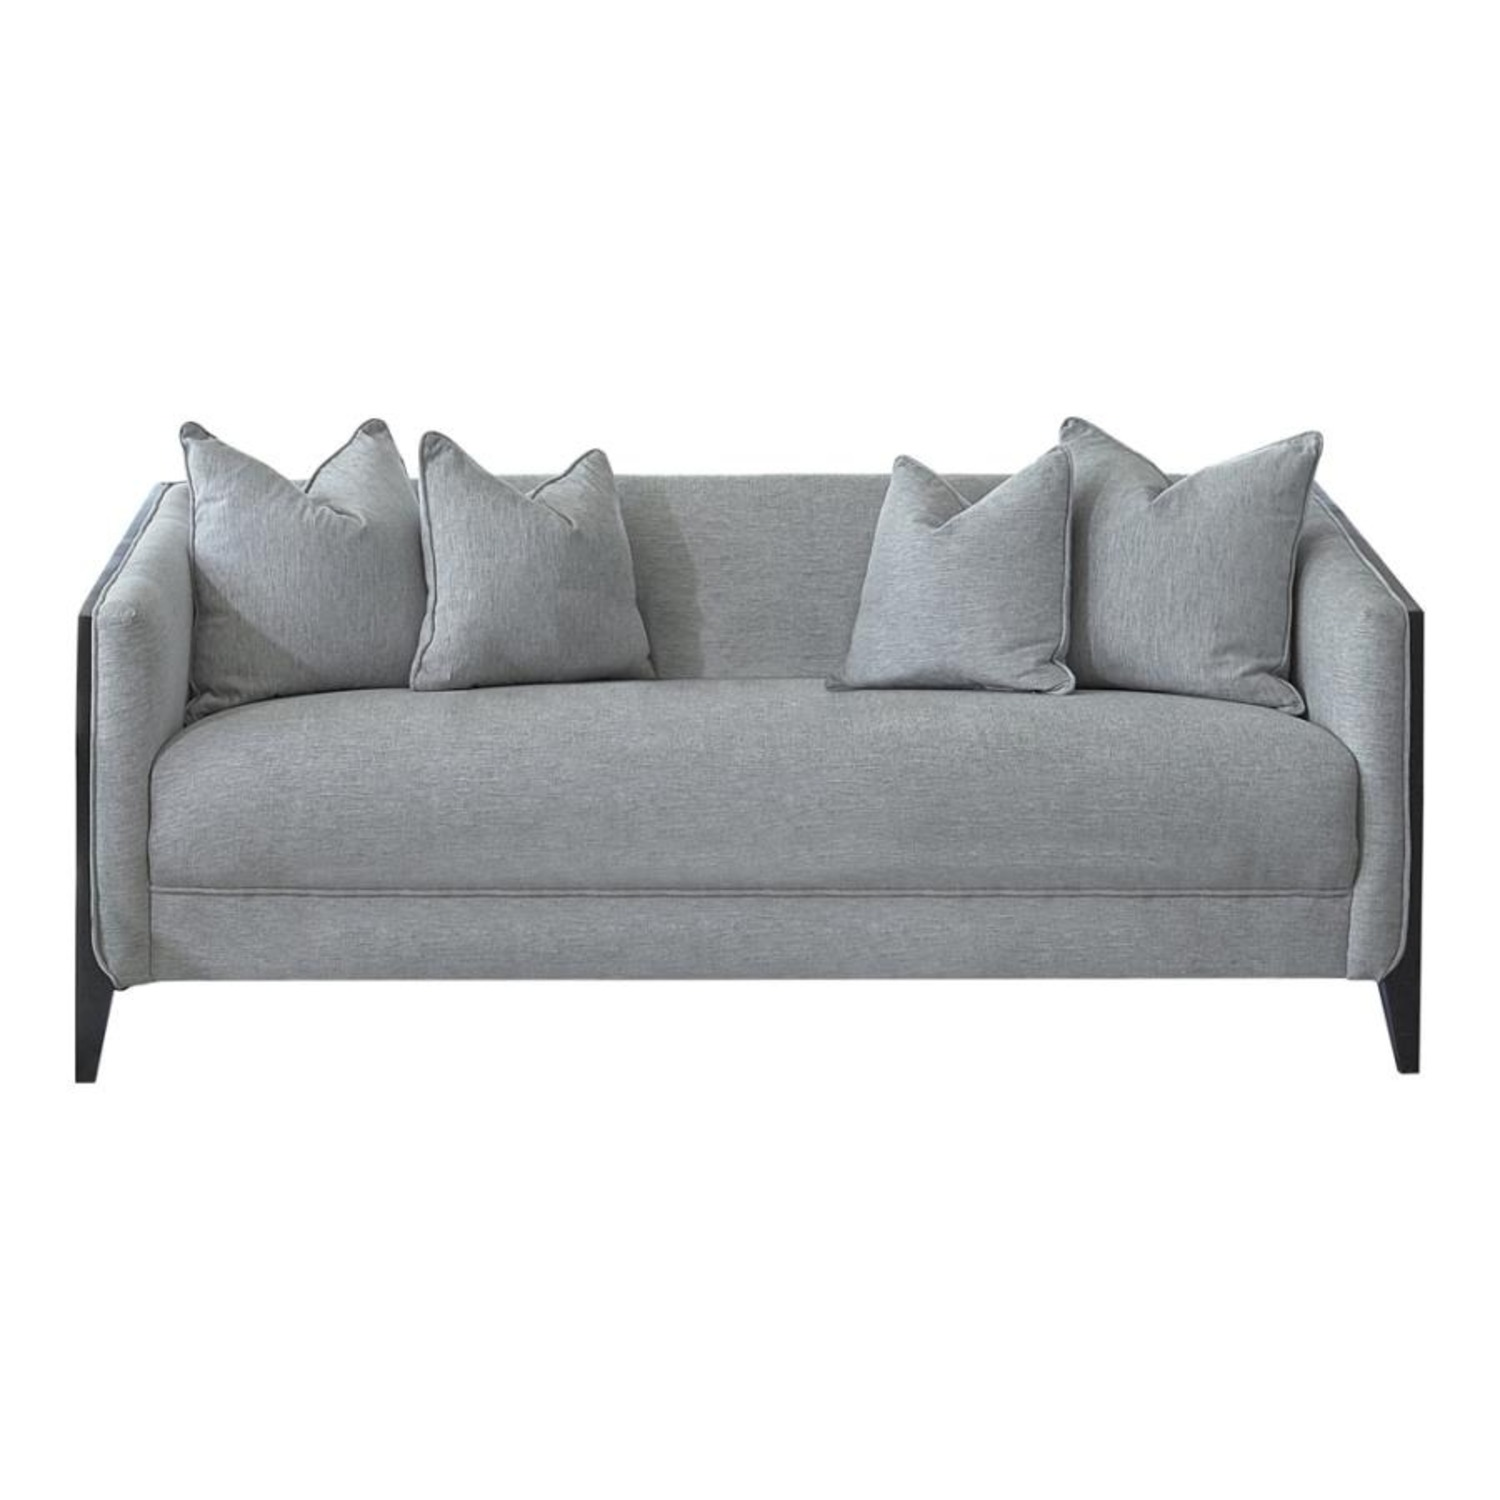 Sofa In Dove Grey Low Pile Chenille Upholstery - image-0